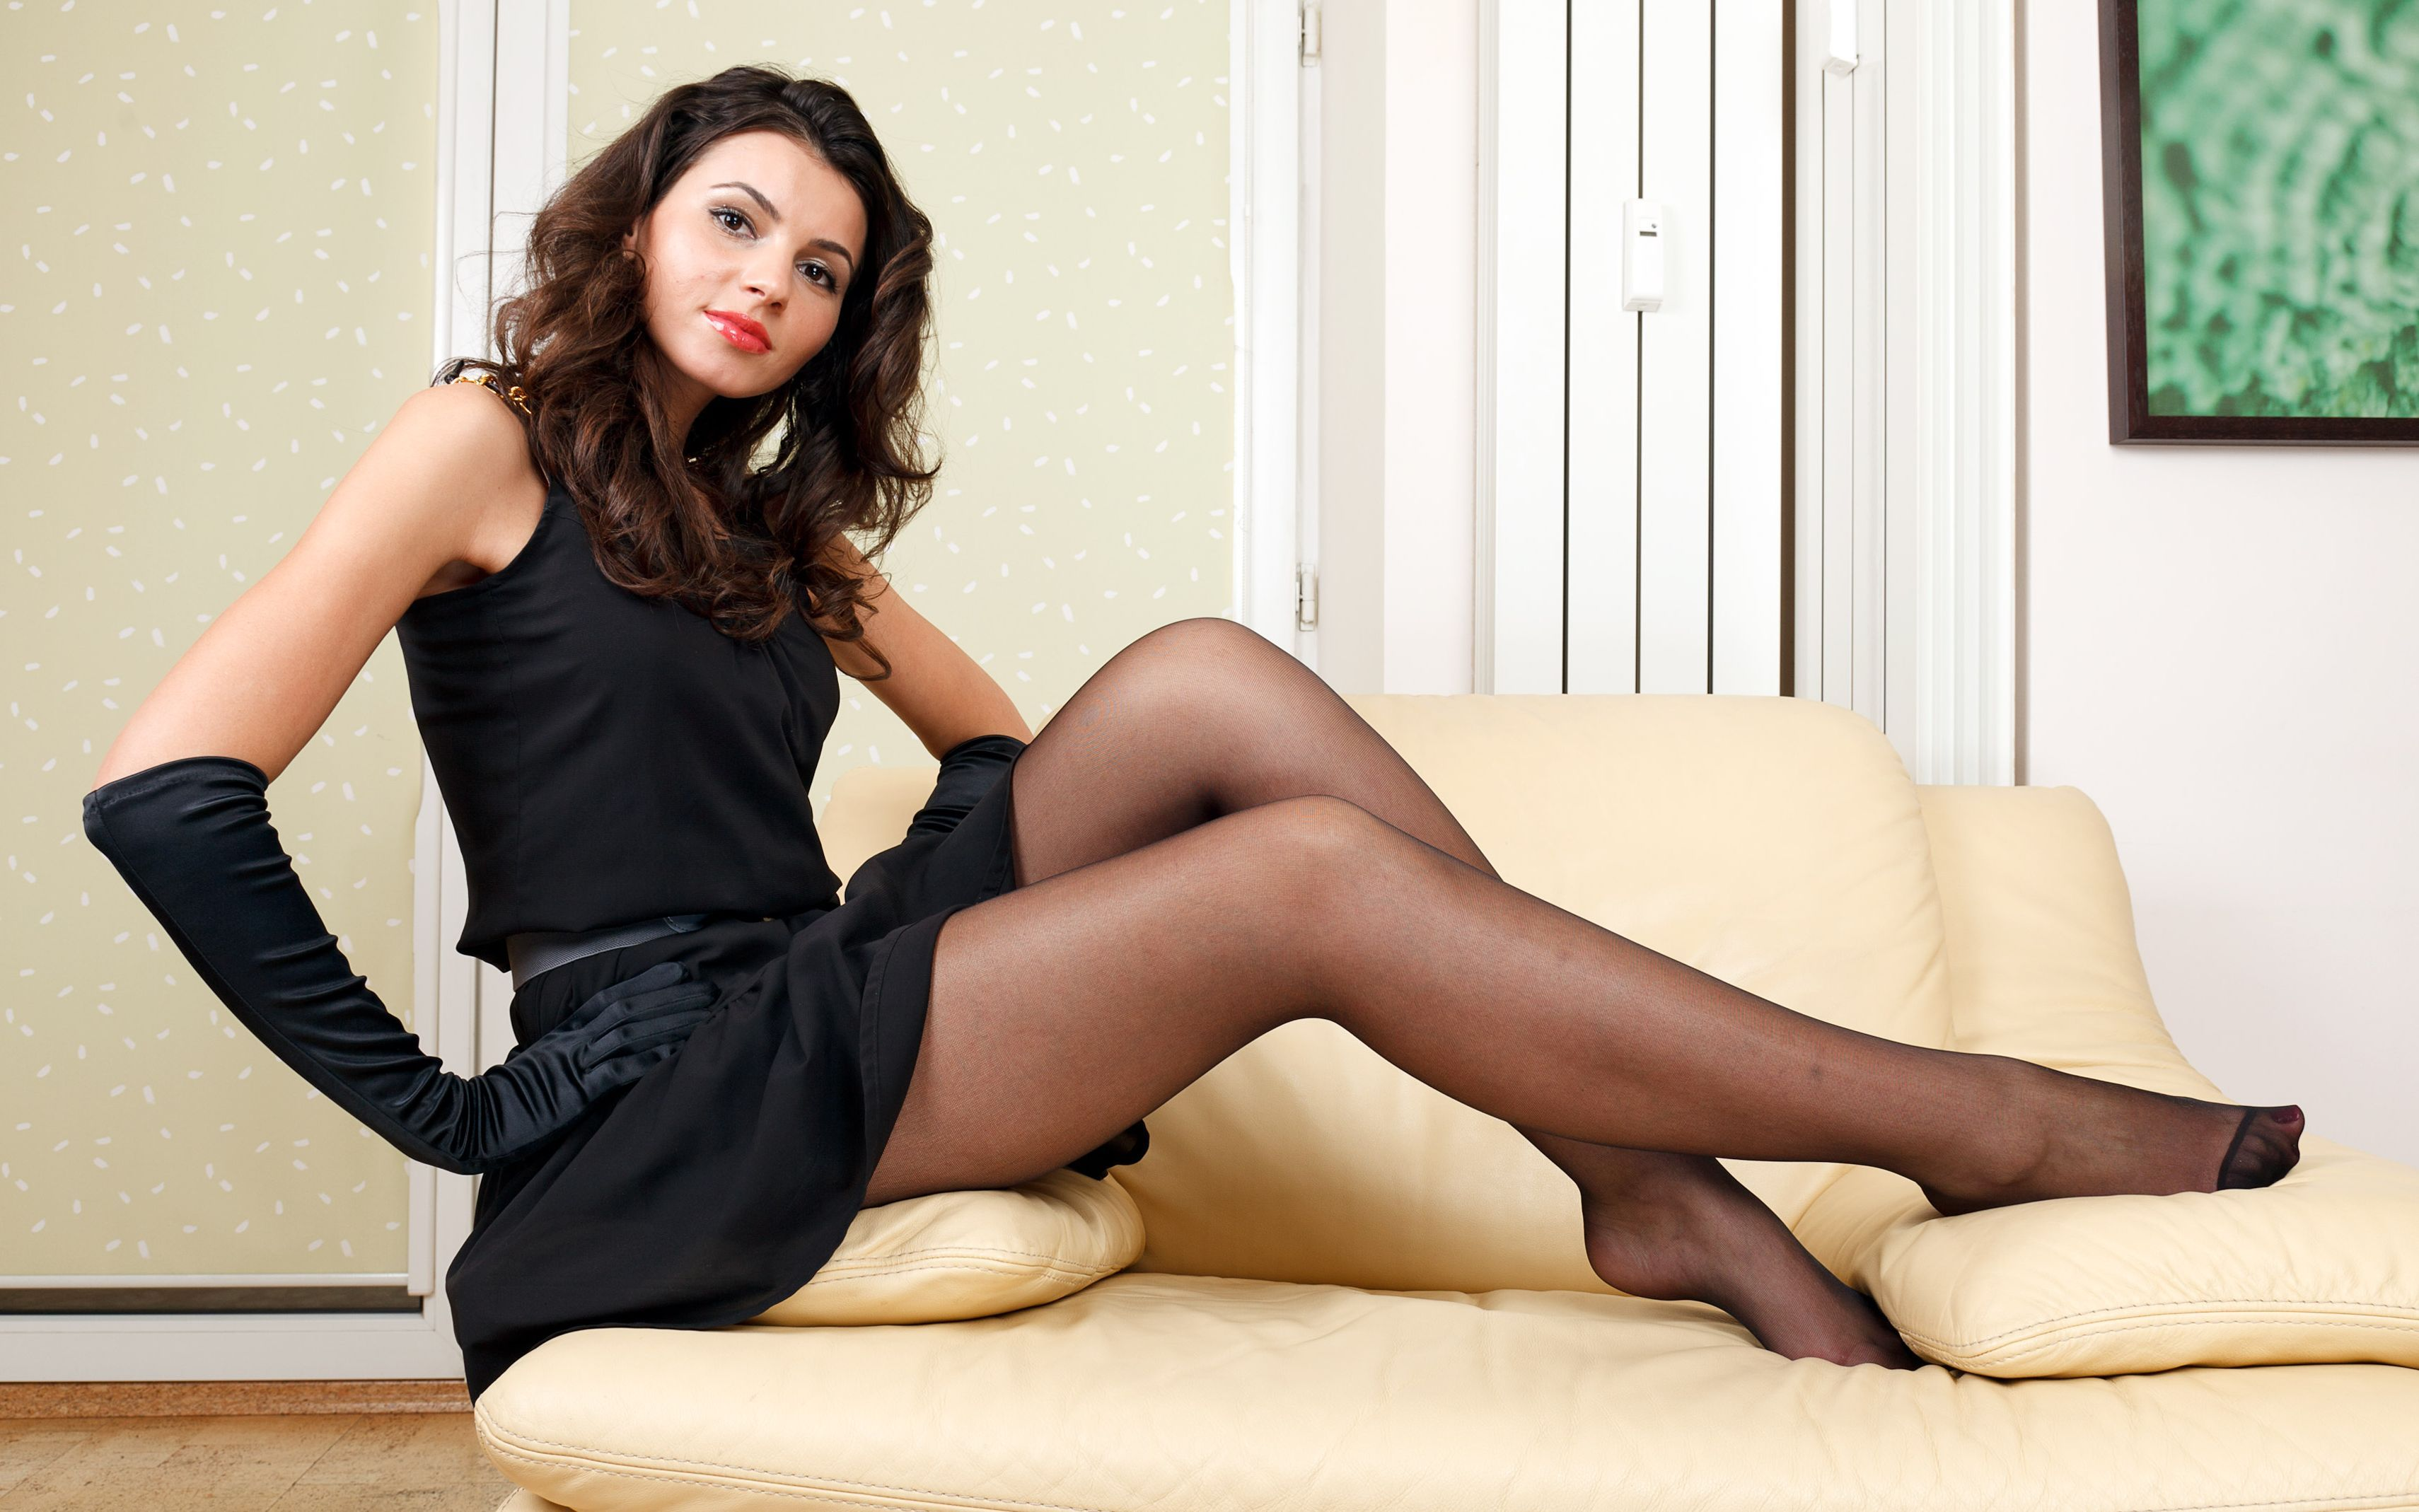 Pretty Angelica Saige posing in stockings and getting a big dagger № 1141239 загрузить